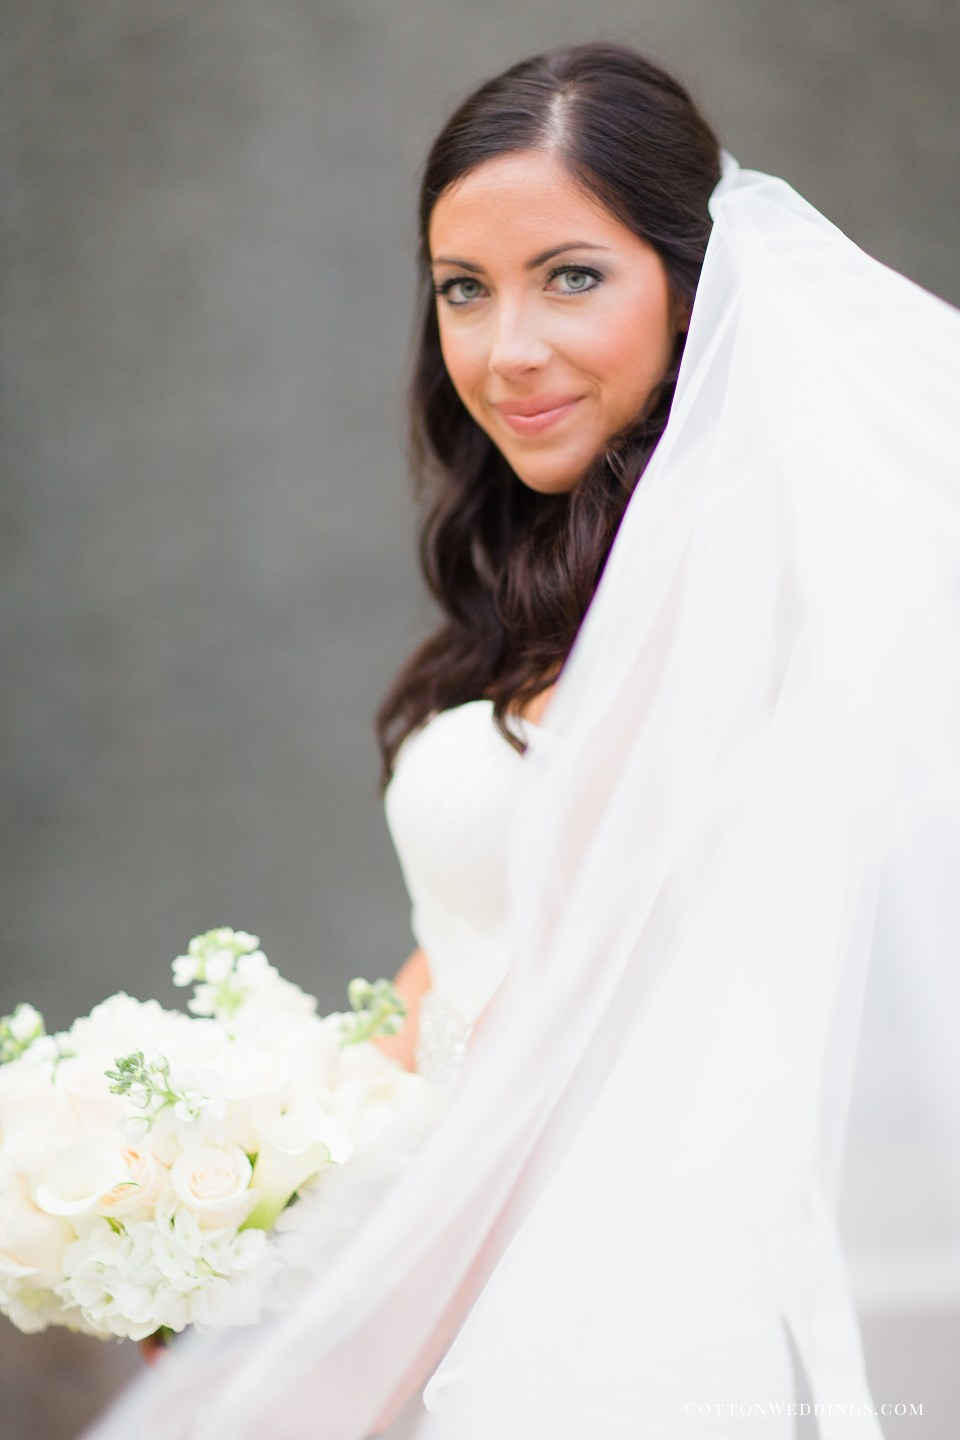 beautiful bride veil blowing in the wind